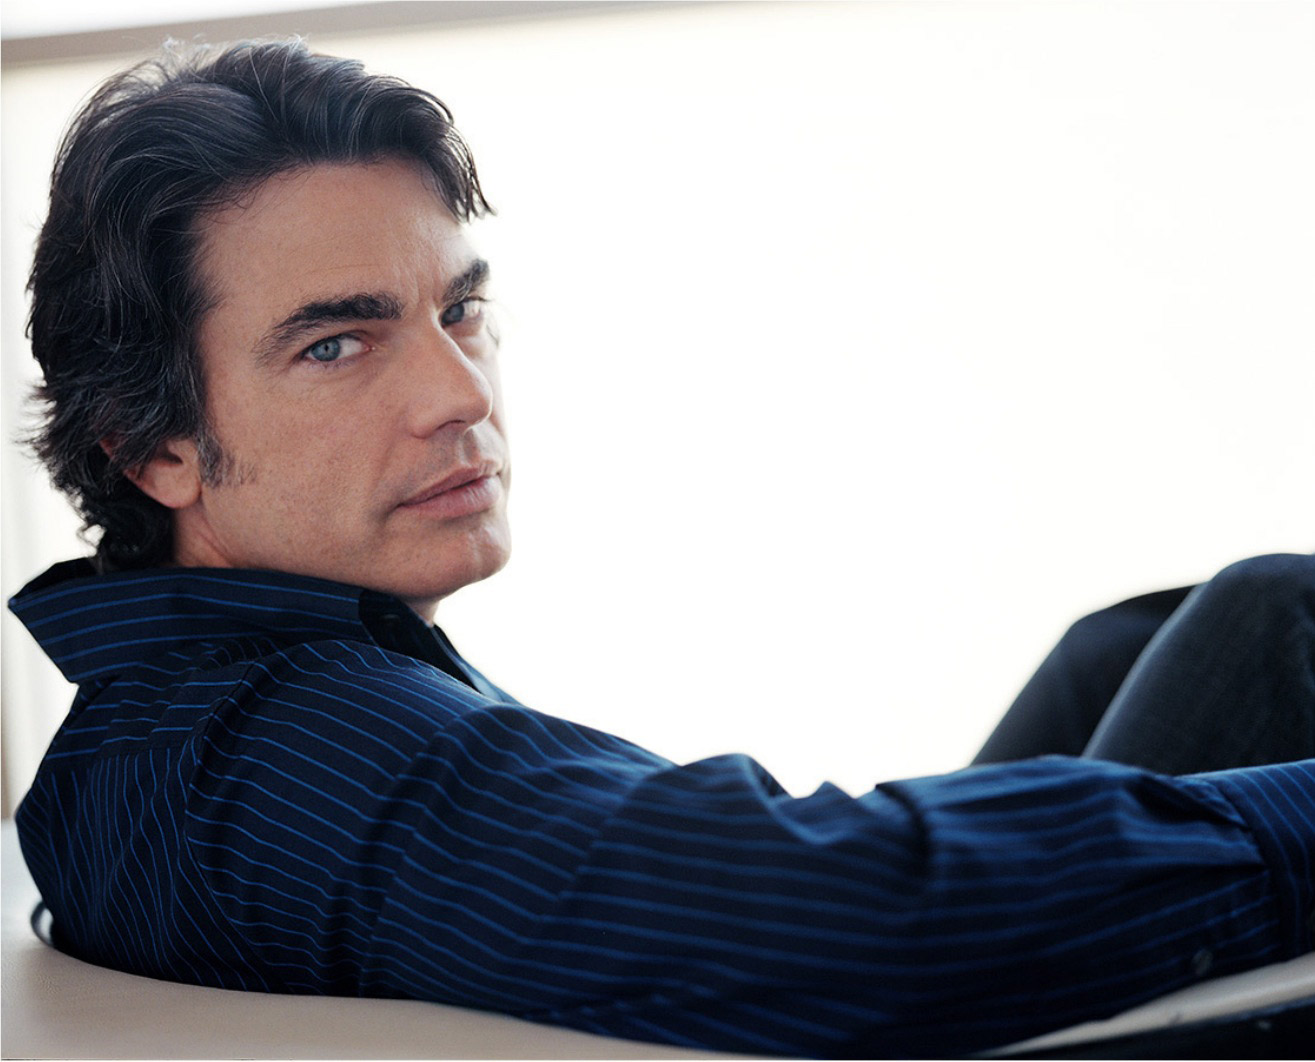 Peter Gallagher, copyright Astor Morgan